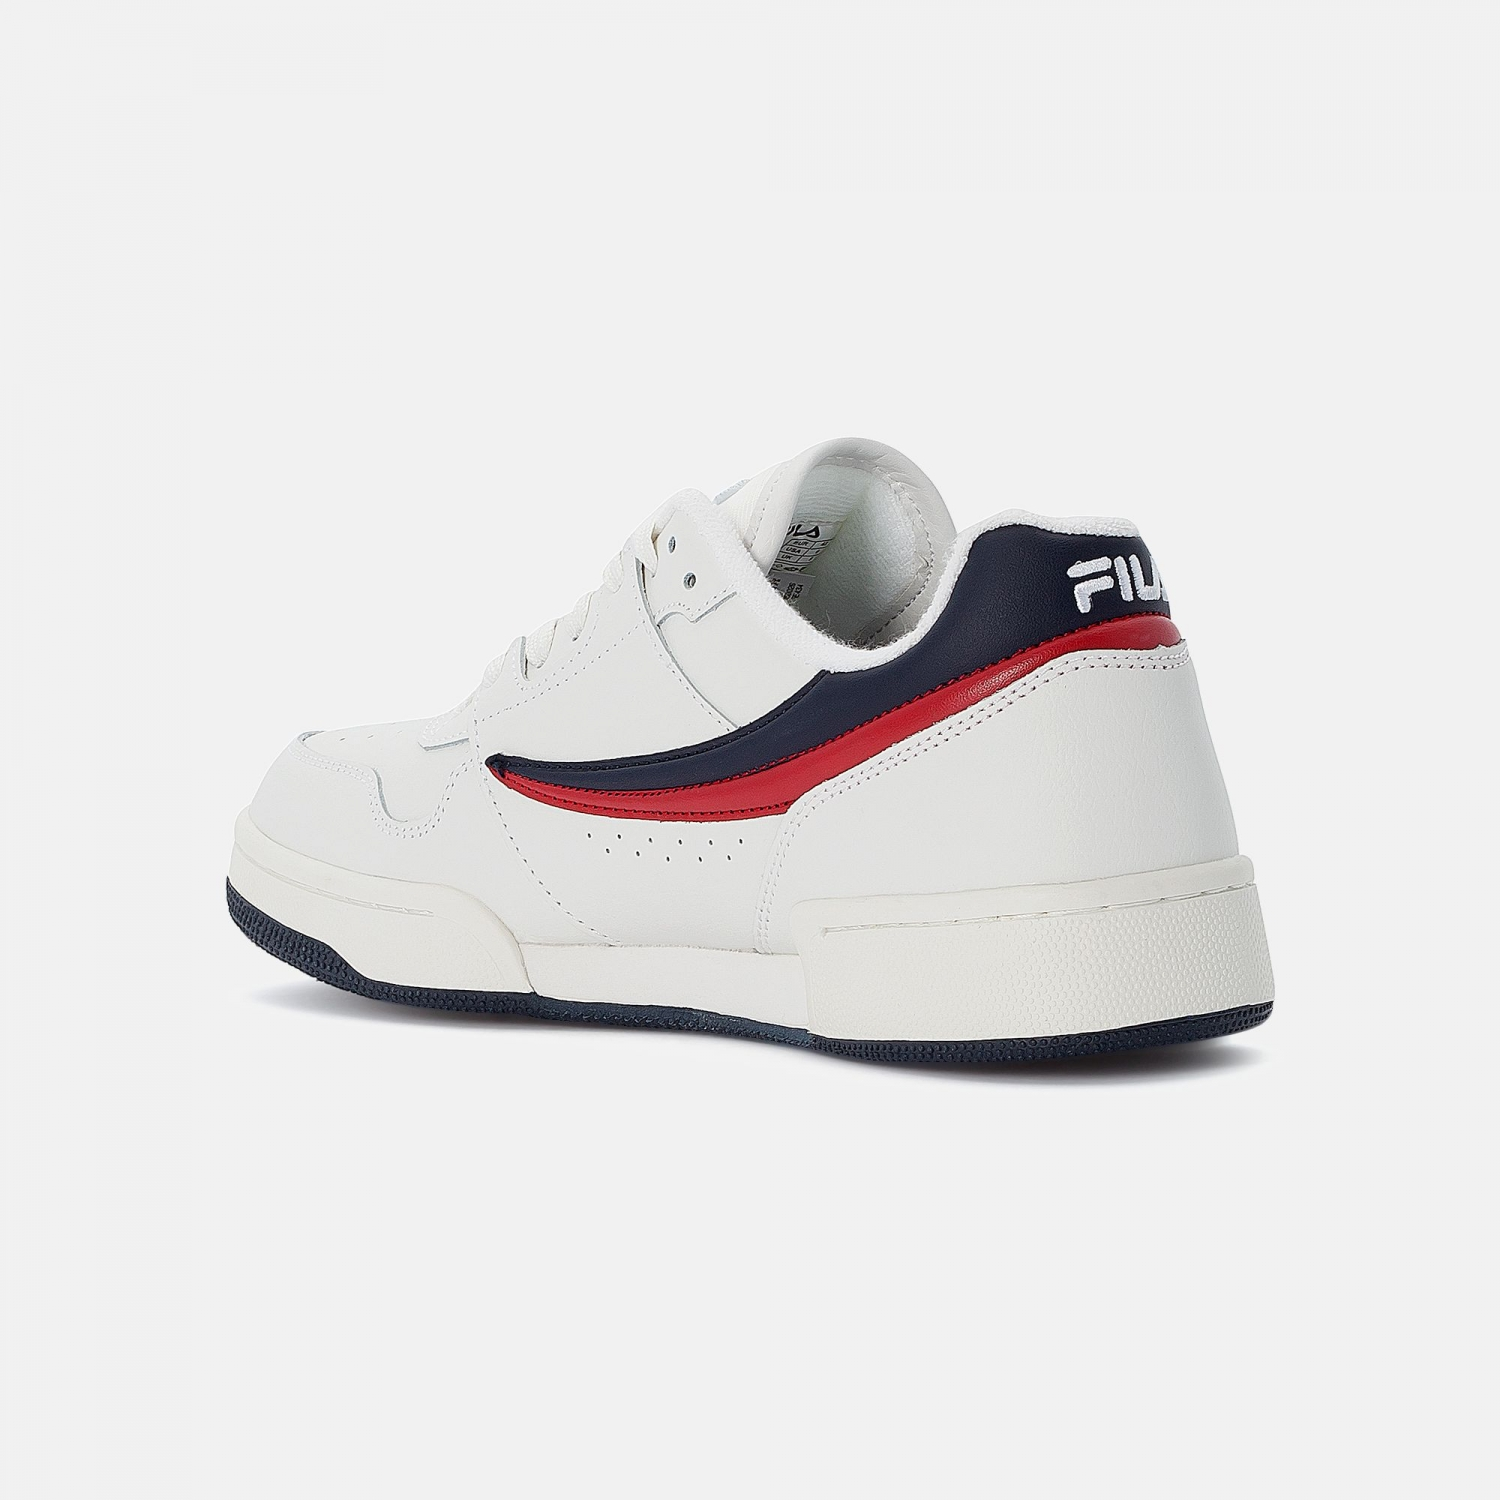 Fila Arcade Low Men white-navy-red Bild 3